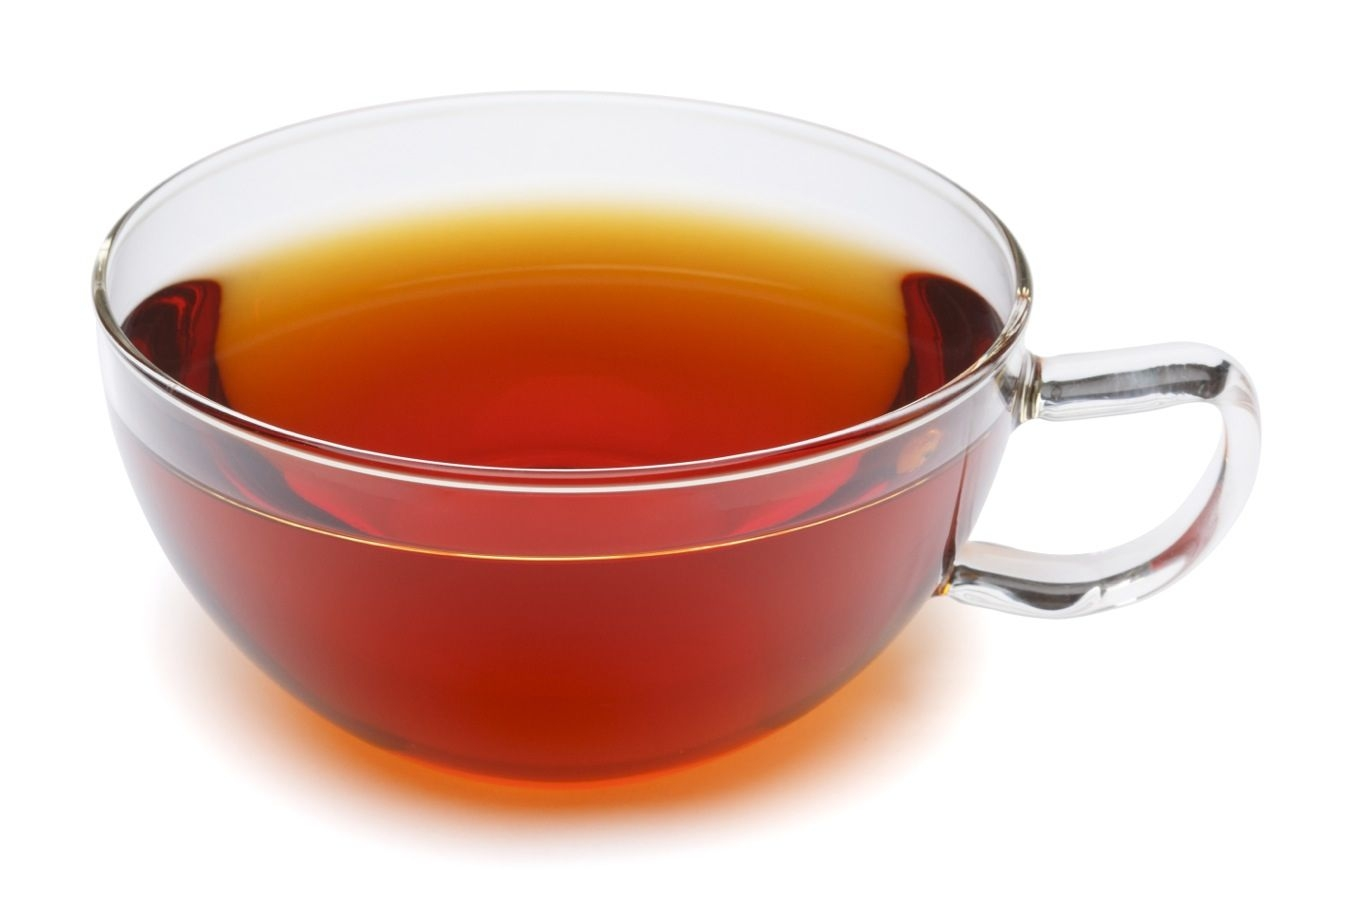 ruby-red-apple-red-currant-rooibos-tea